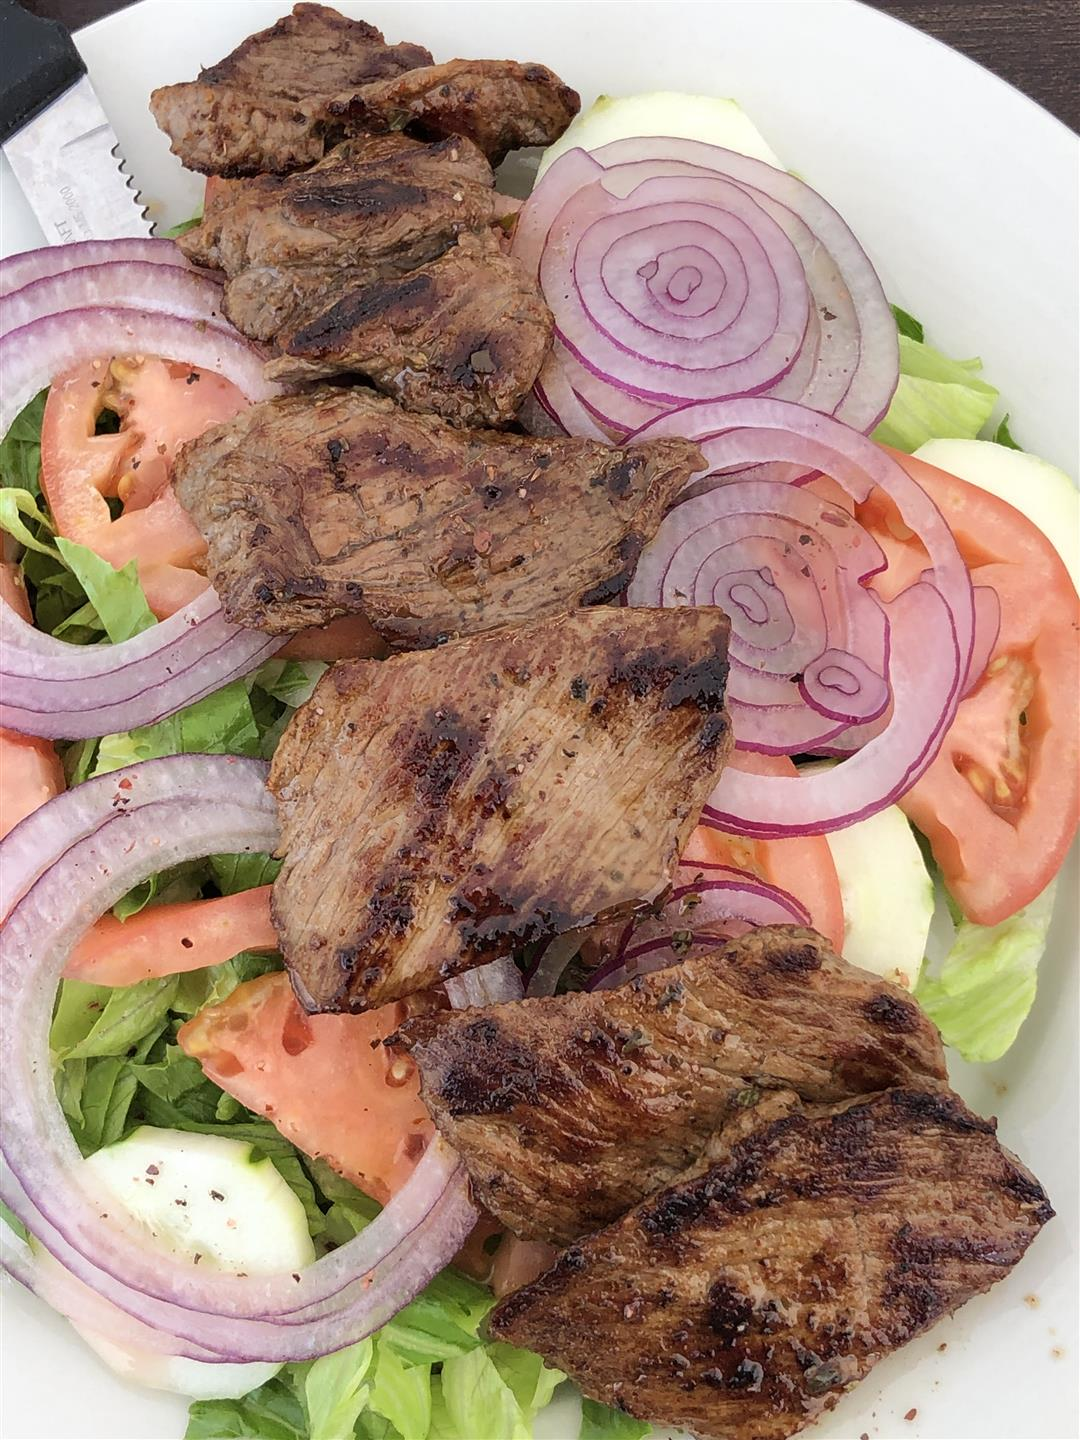 Sliced Steak Salad